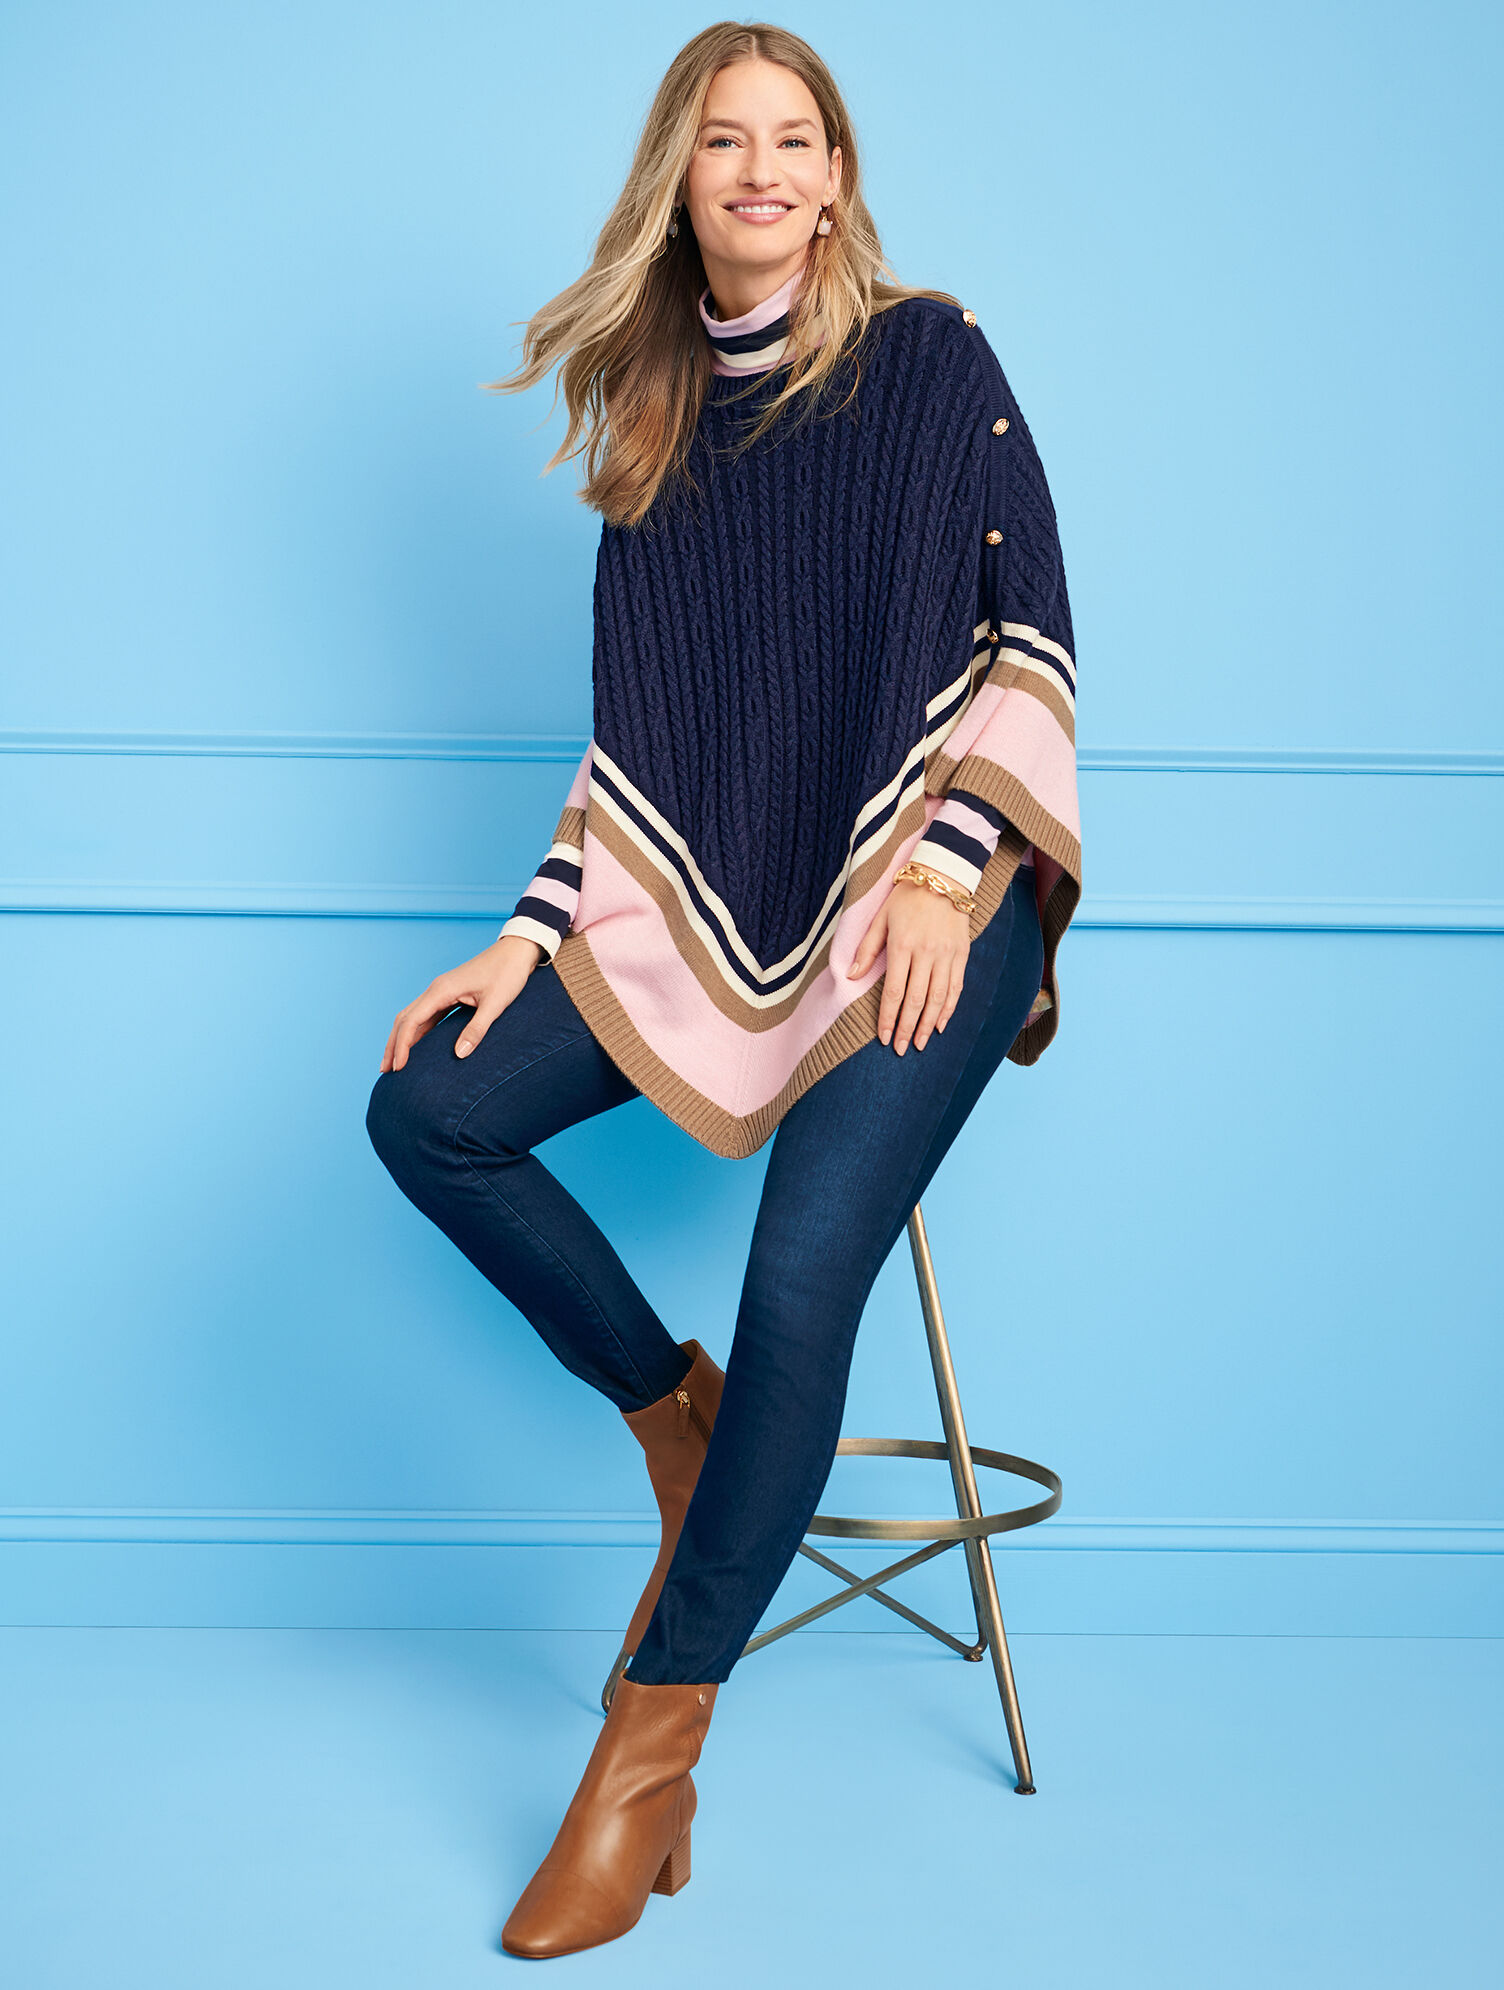 TALBOTS BUY MORE SAVE MORE! UP TO EXTRA 60% OFF CLEARANCE!